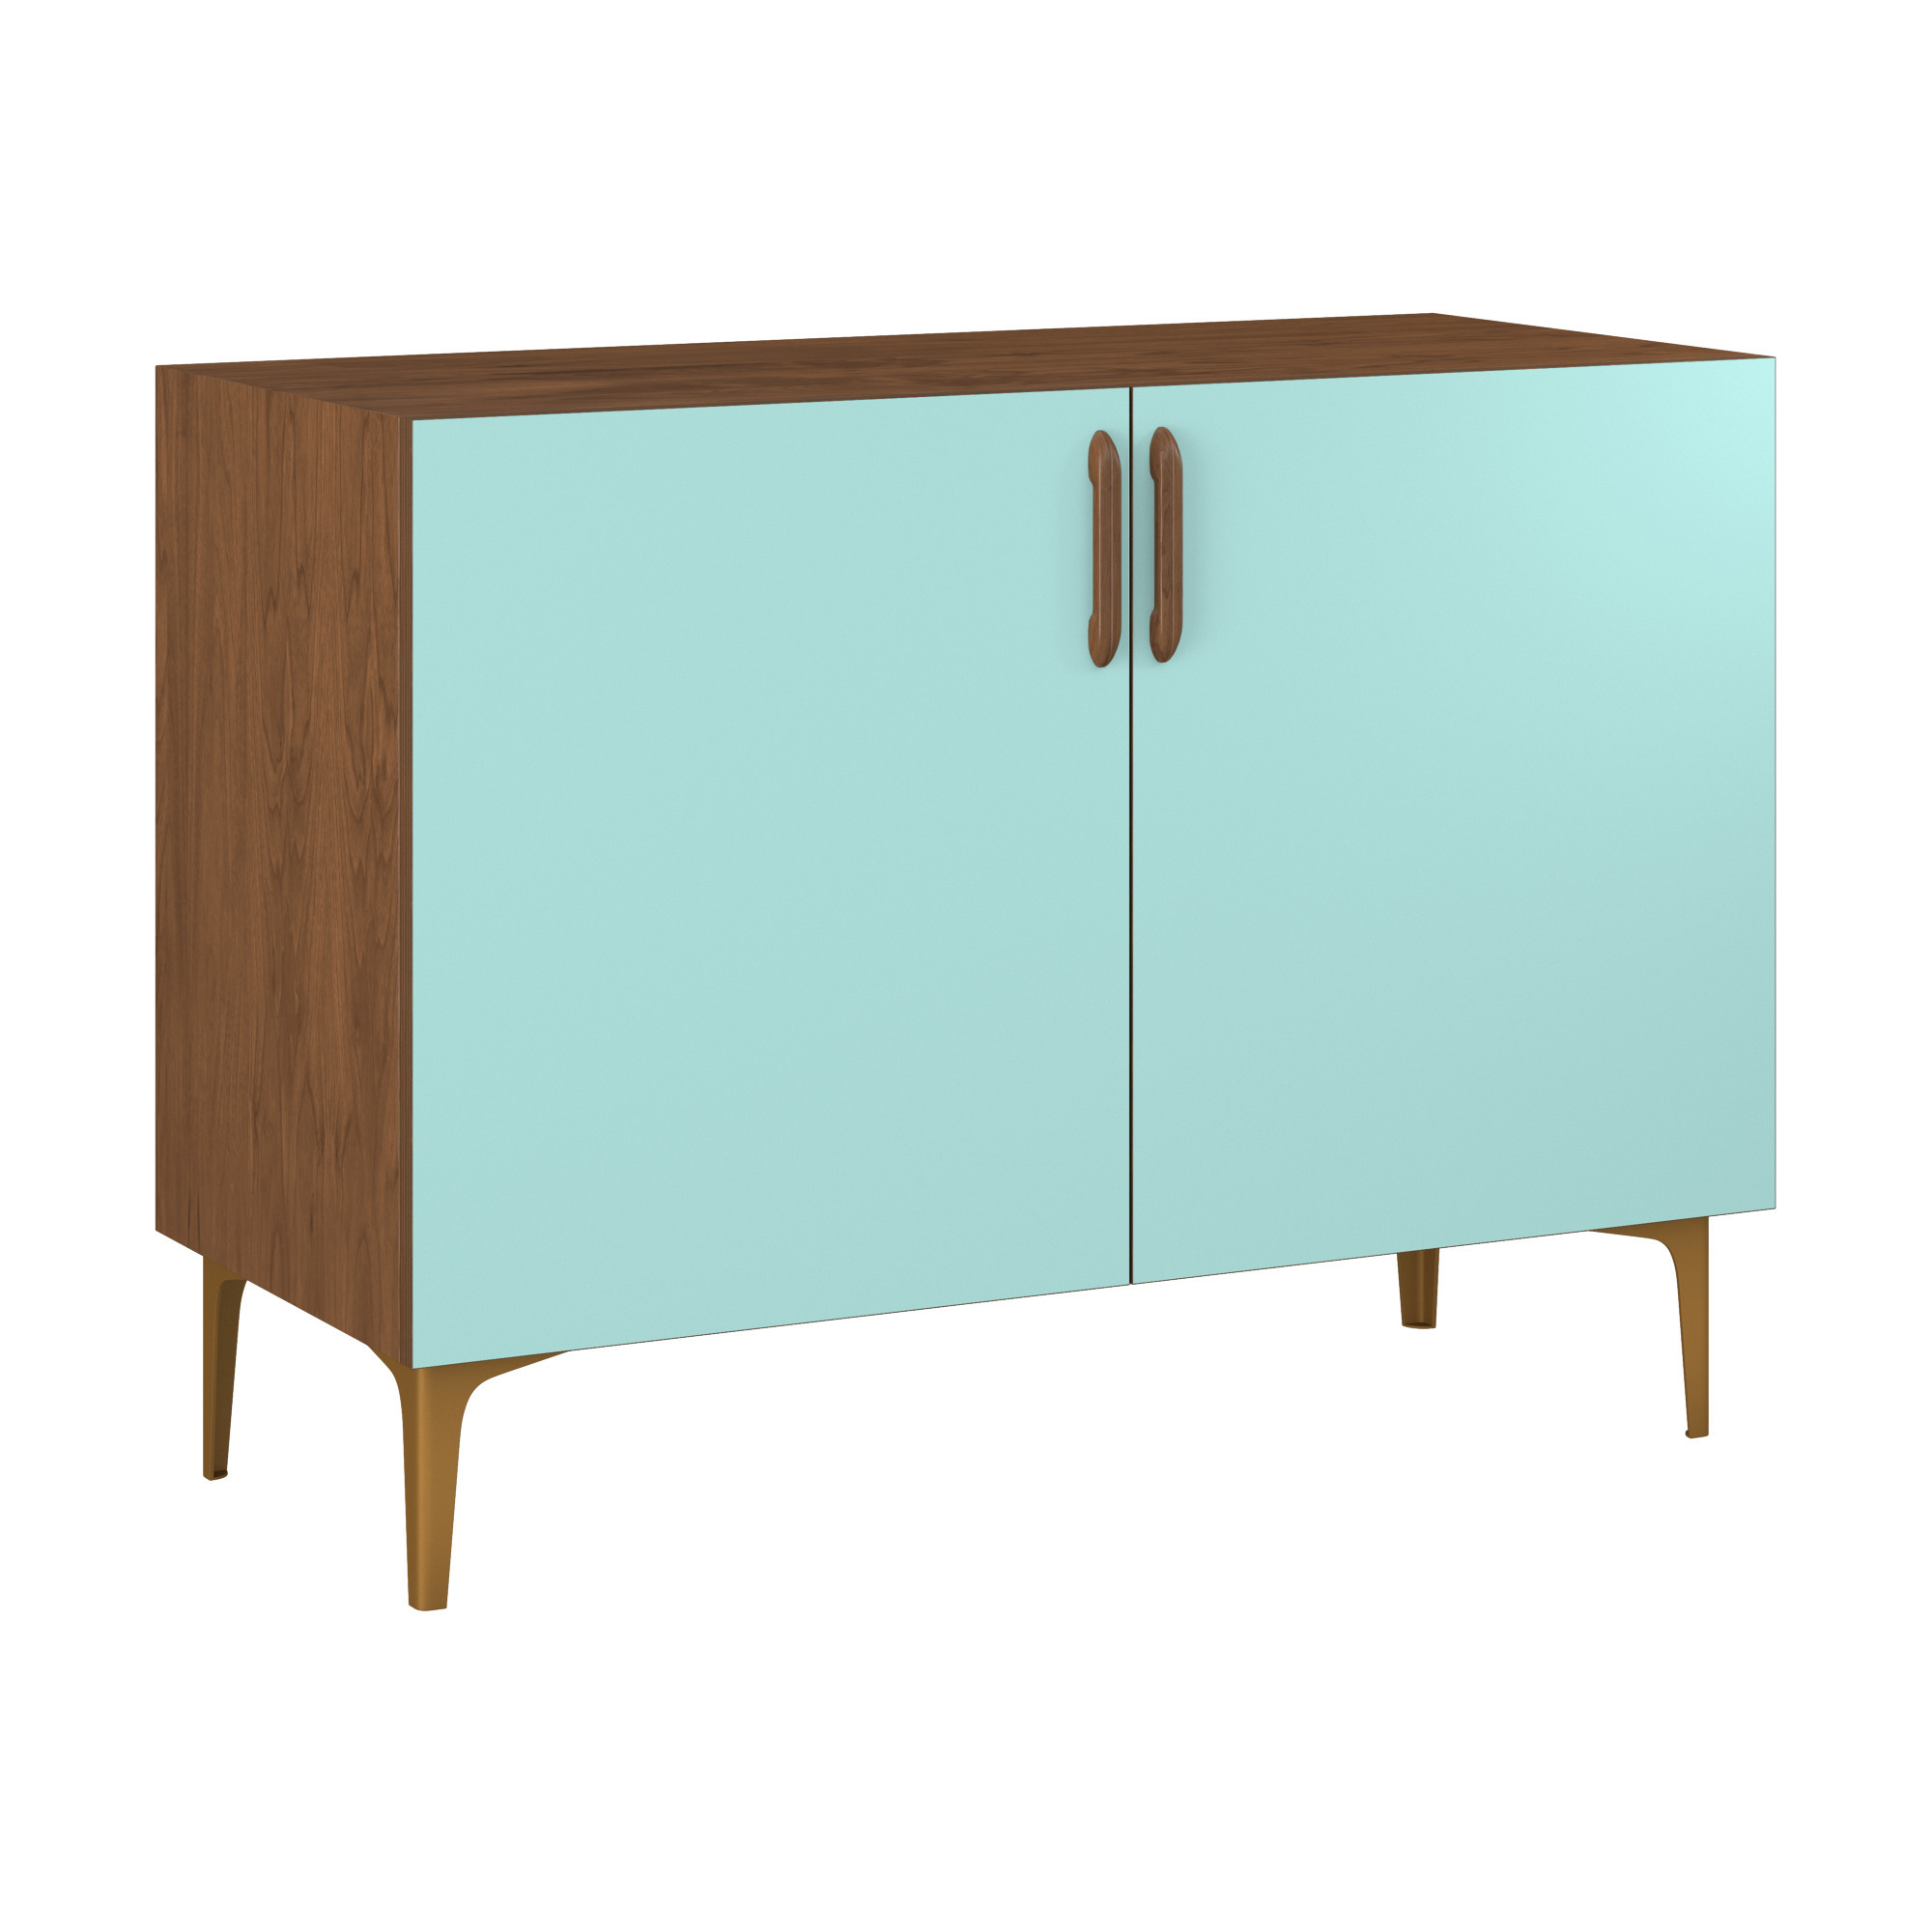 Customize Credenzas   Snugsquare Pertaining To Southwest Pink Credenzas (View 12 of 30)